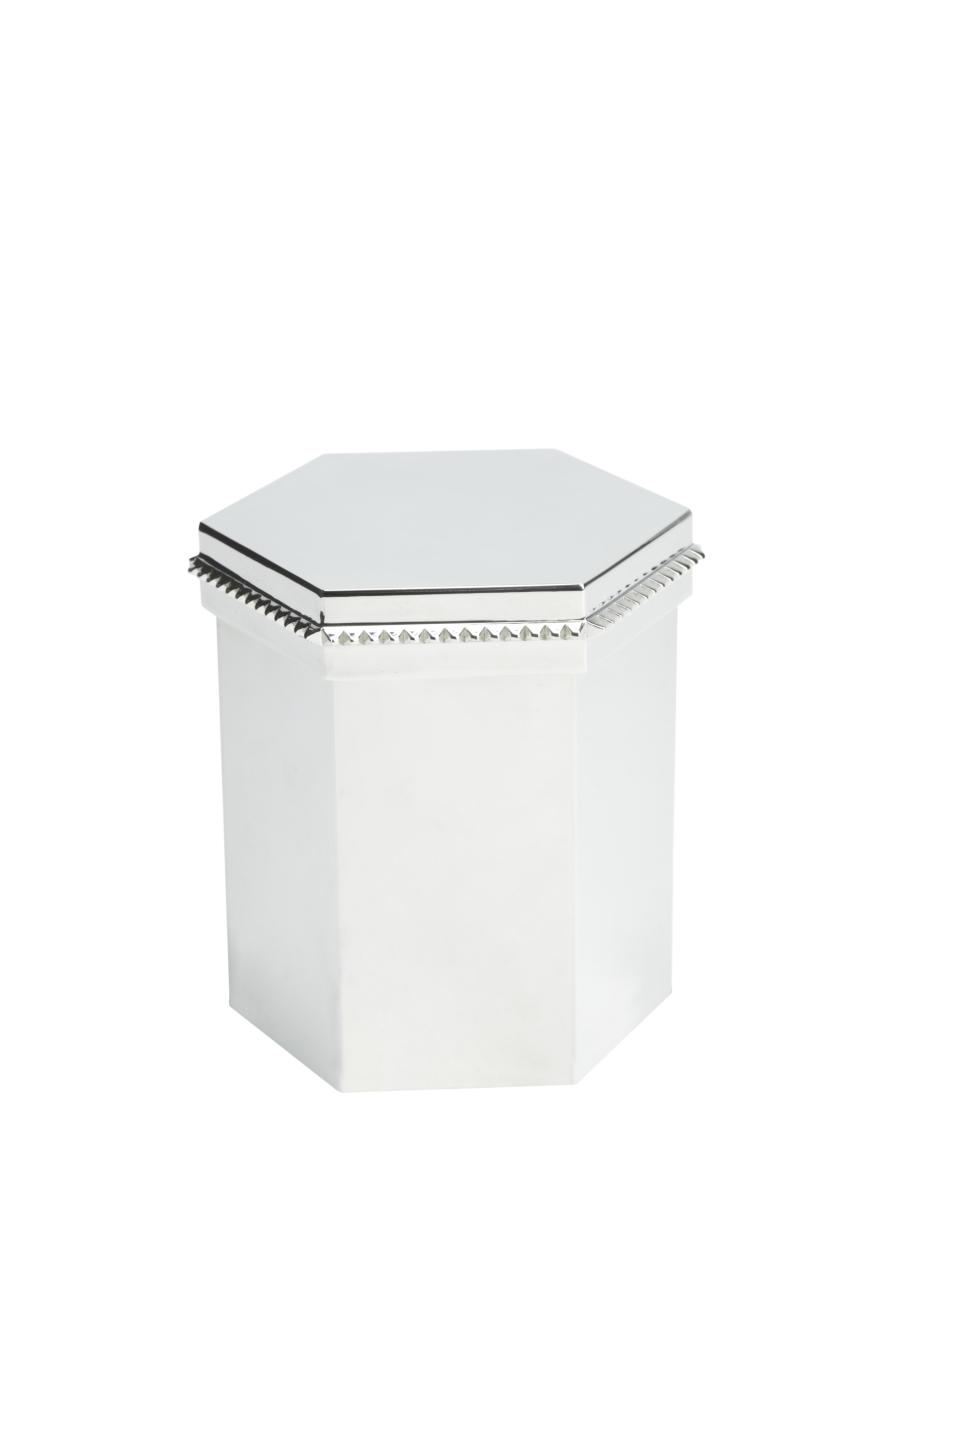 <b>Eddie Borgo for Target + Neiman Marcus Holiday Collection Accent Box</b><br><br> Price: $49.99<br><br>